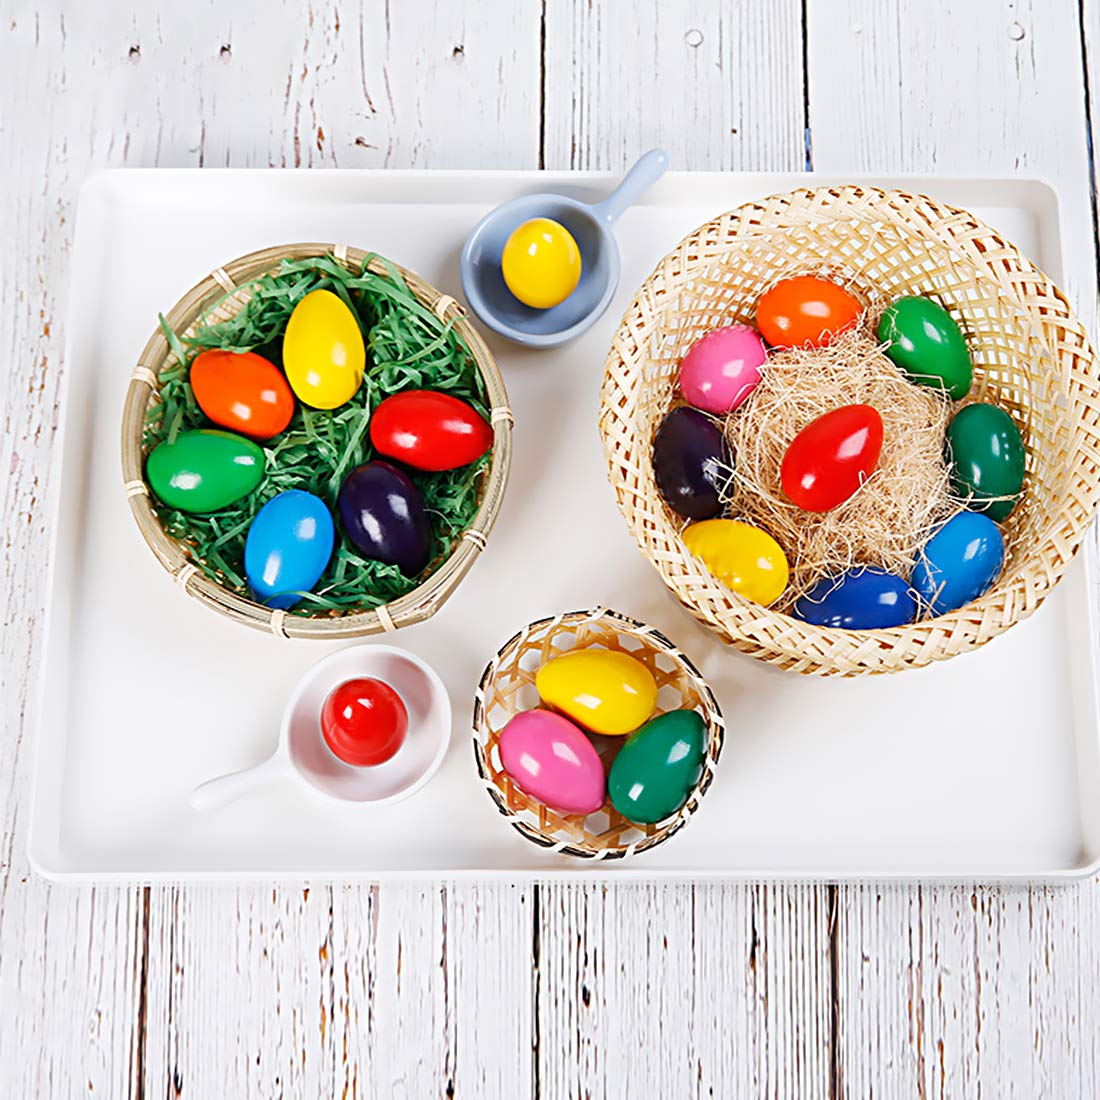 RenFox Toddler Crayons Egg Crayons for Toddlers /& 9 Colours /& 9 Colours /& Palm-Grip Crayons /& Non Toxic Paint for Toddlers Kids Crayons Drawing for Toddlers Gift for Christmas Halloween Birthday